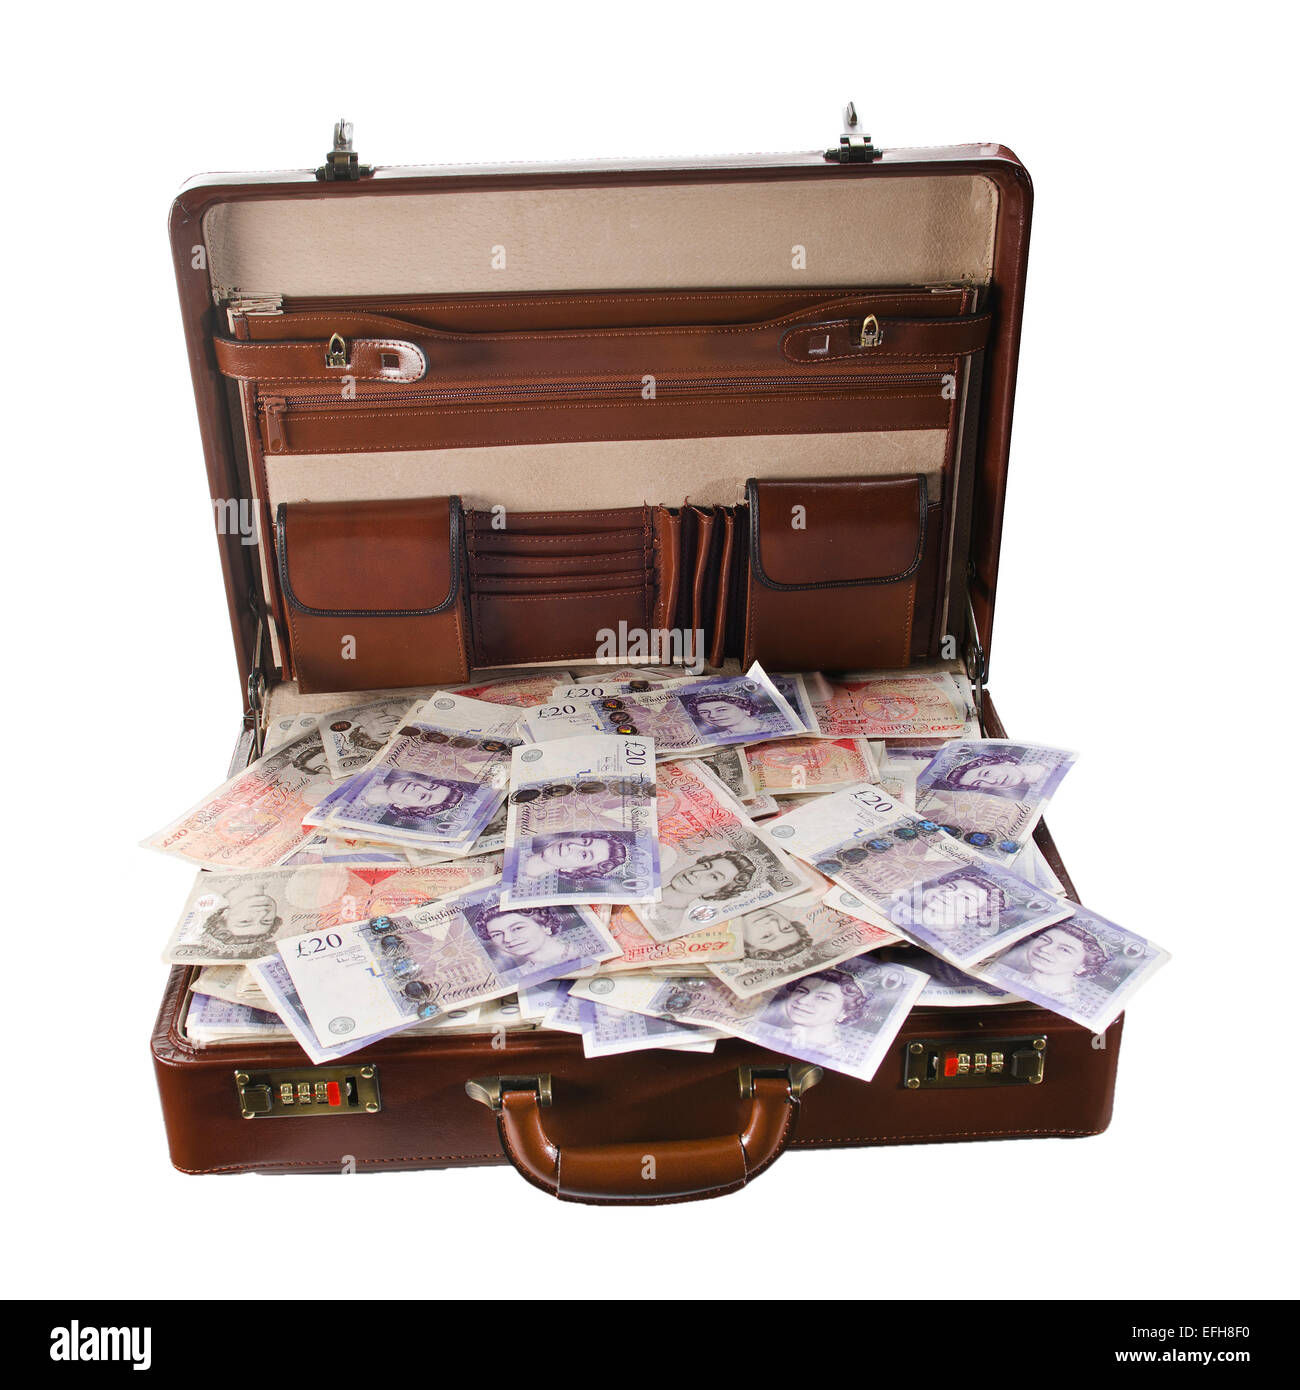 Attache case or briefcase full of UK British banknotes on a white background - Stock Image